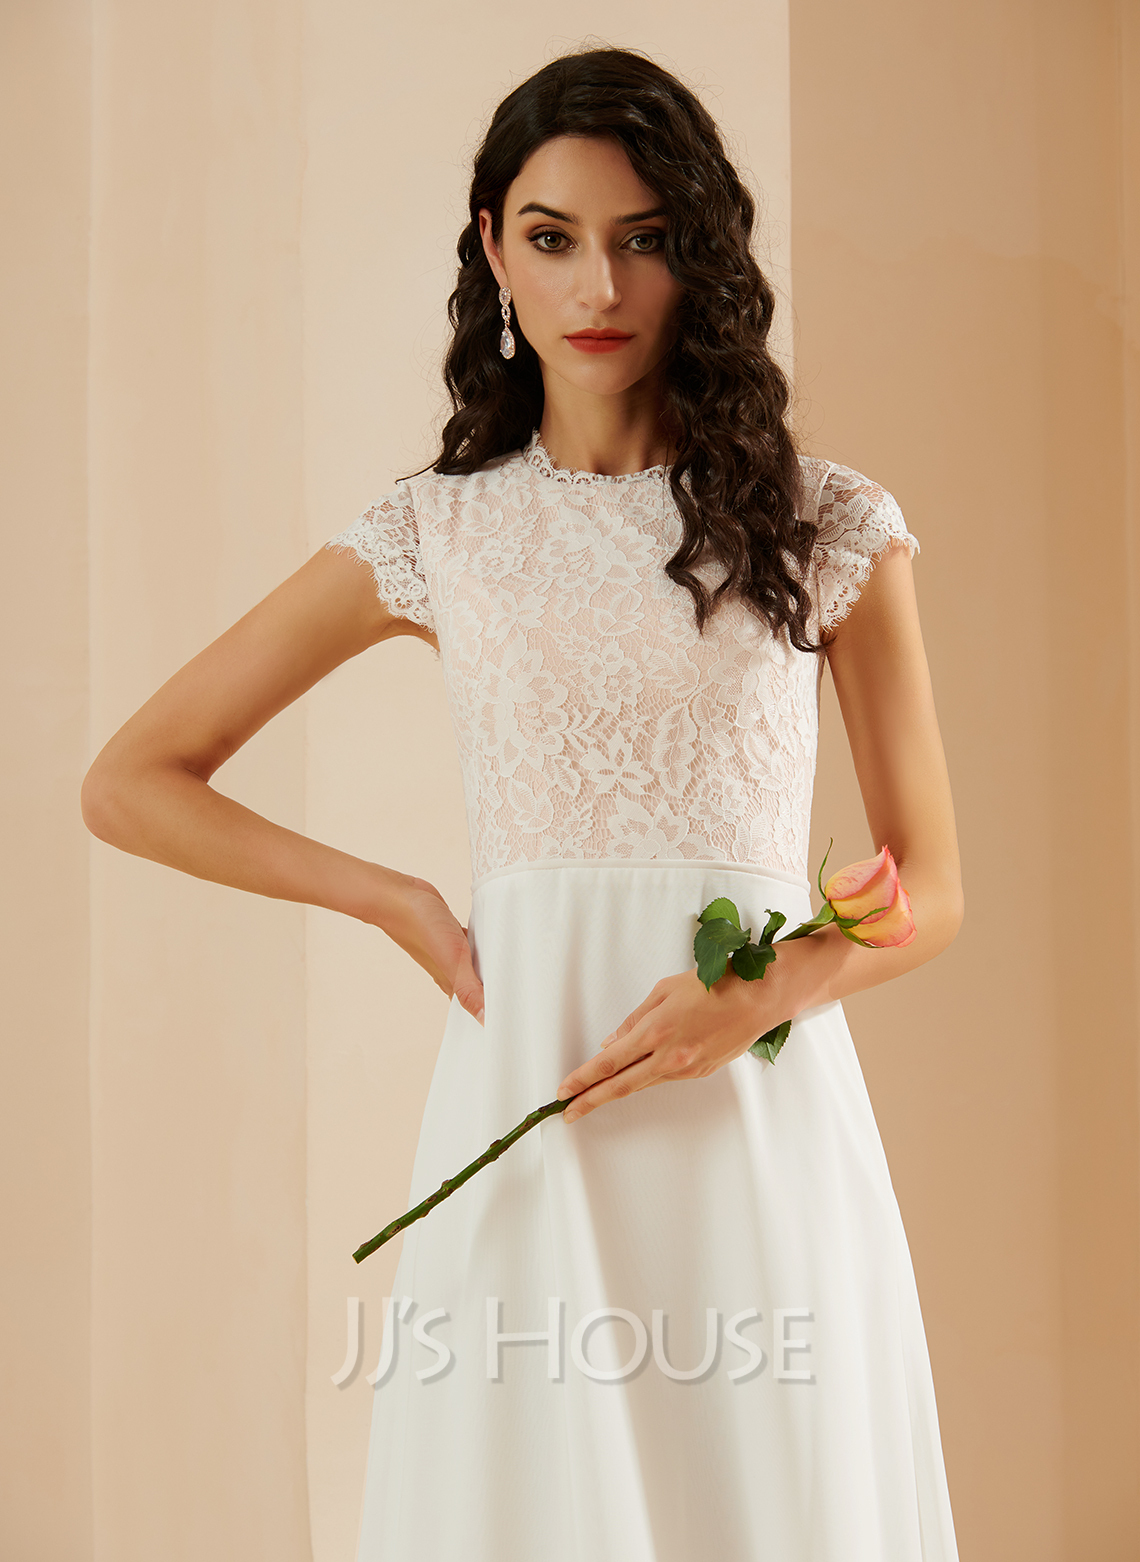 A-Line Scoop Neck Floor-Length Wedding Dress With Lace